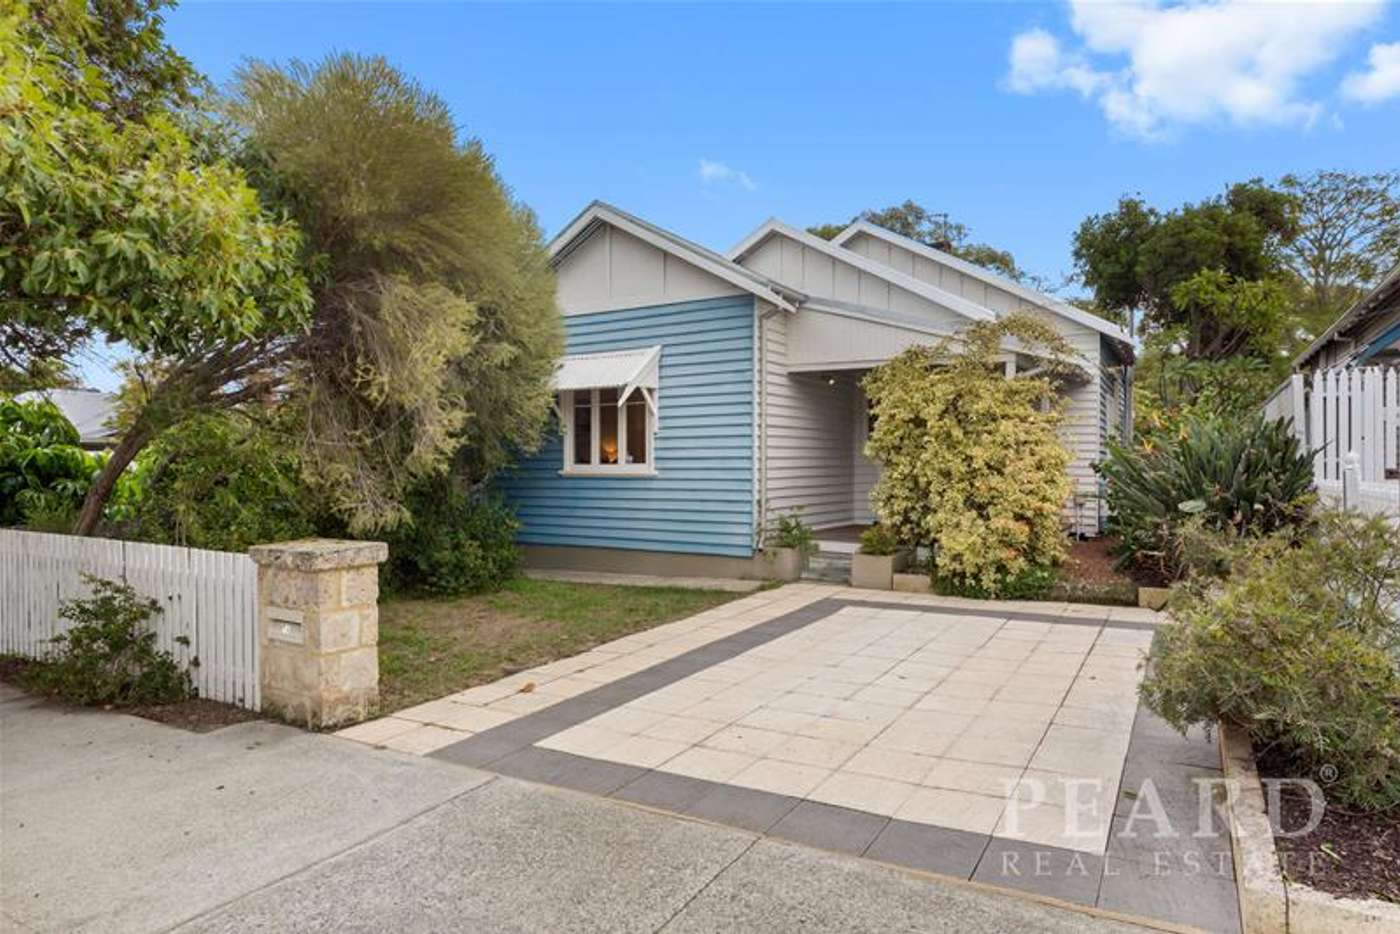 Main view of Homely house listing, 41 Balmoral Street, East Victoria Park WA 6101